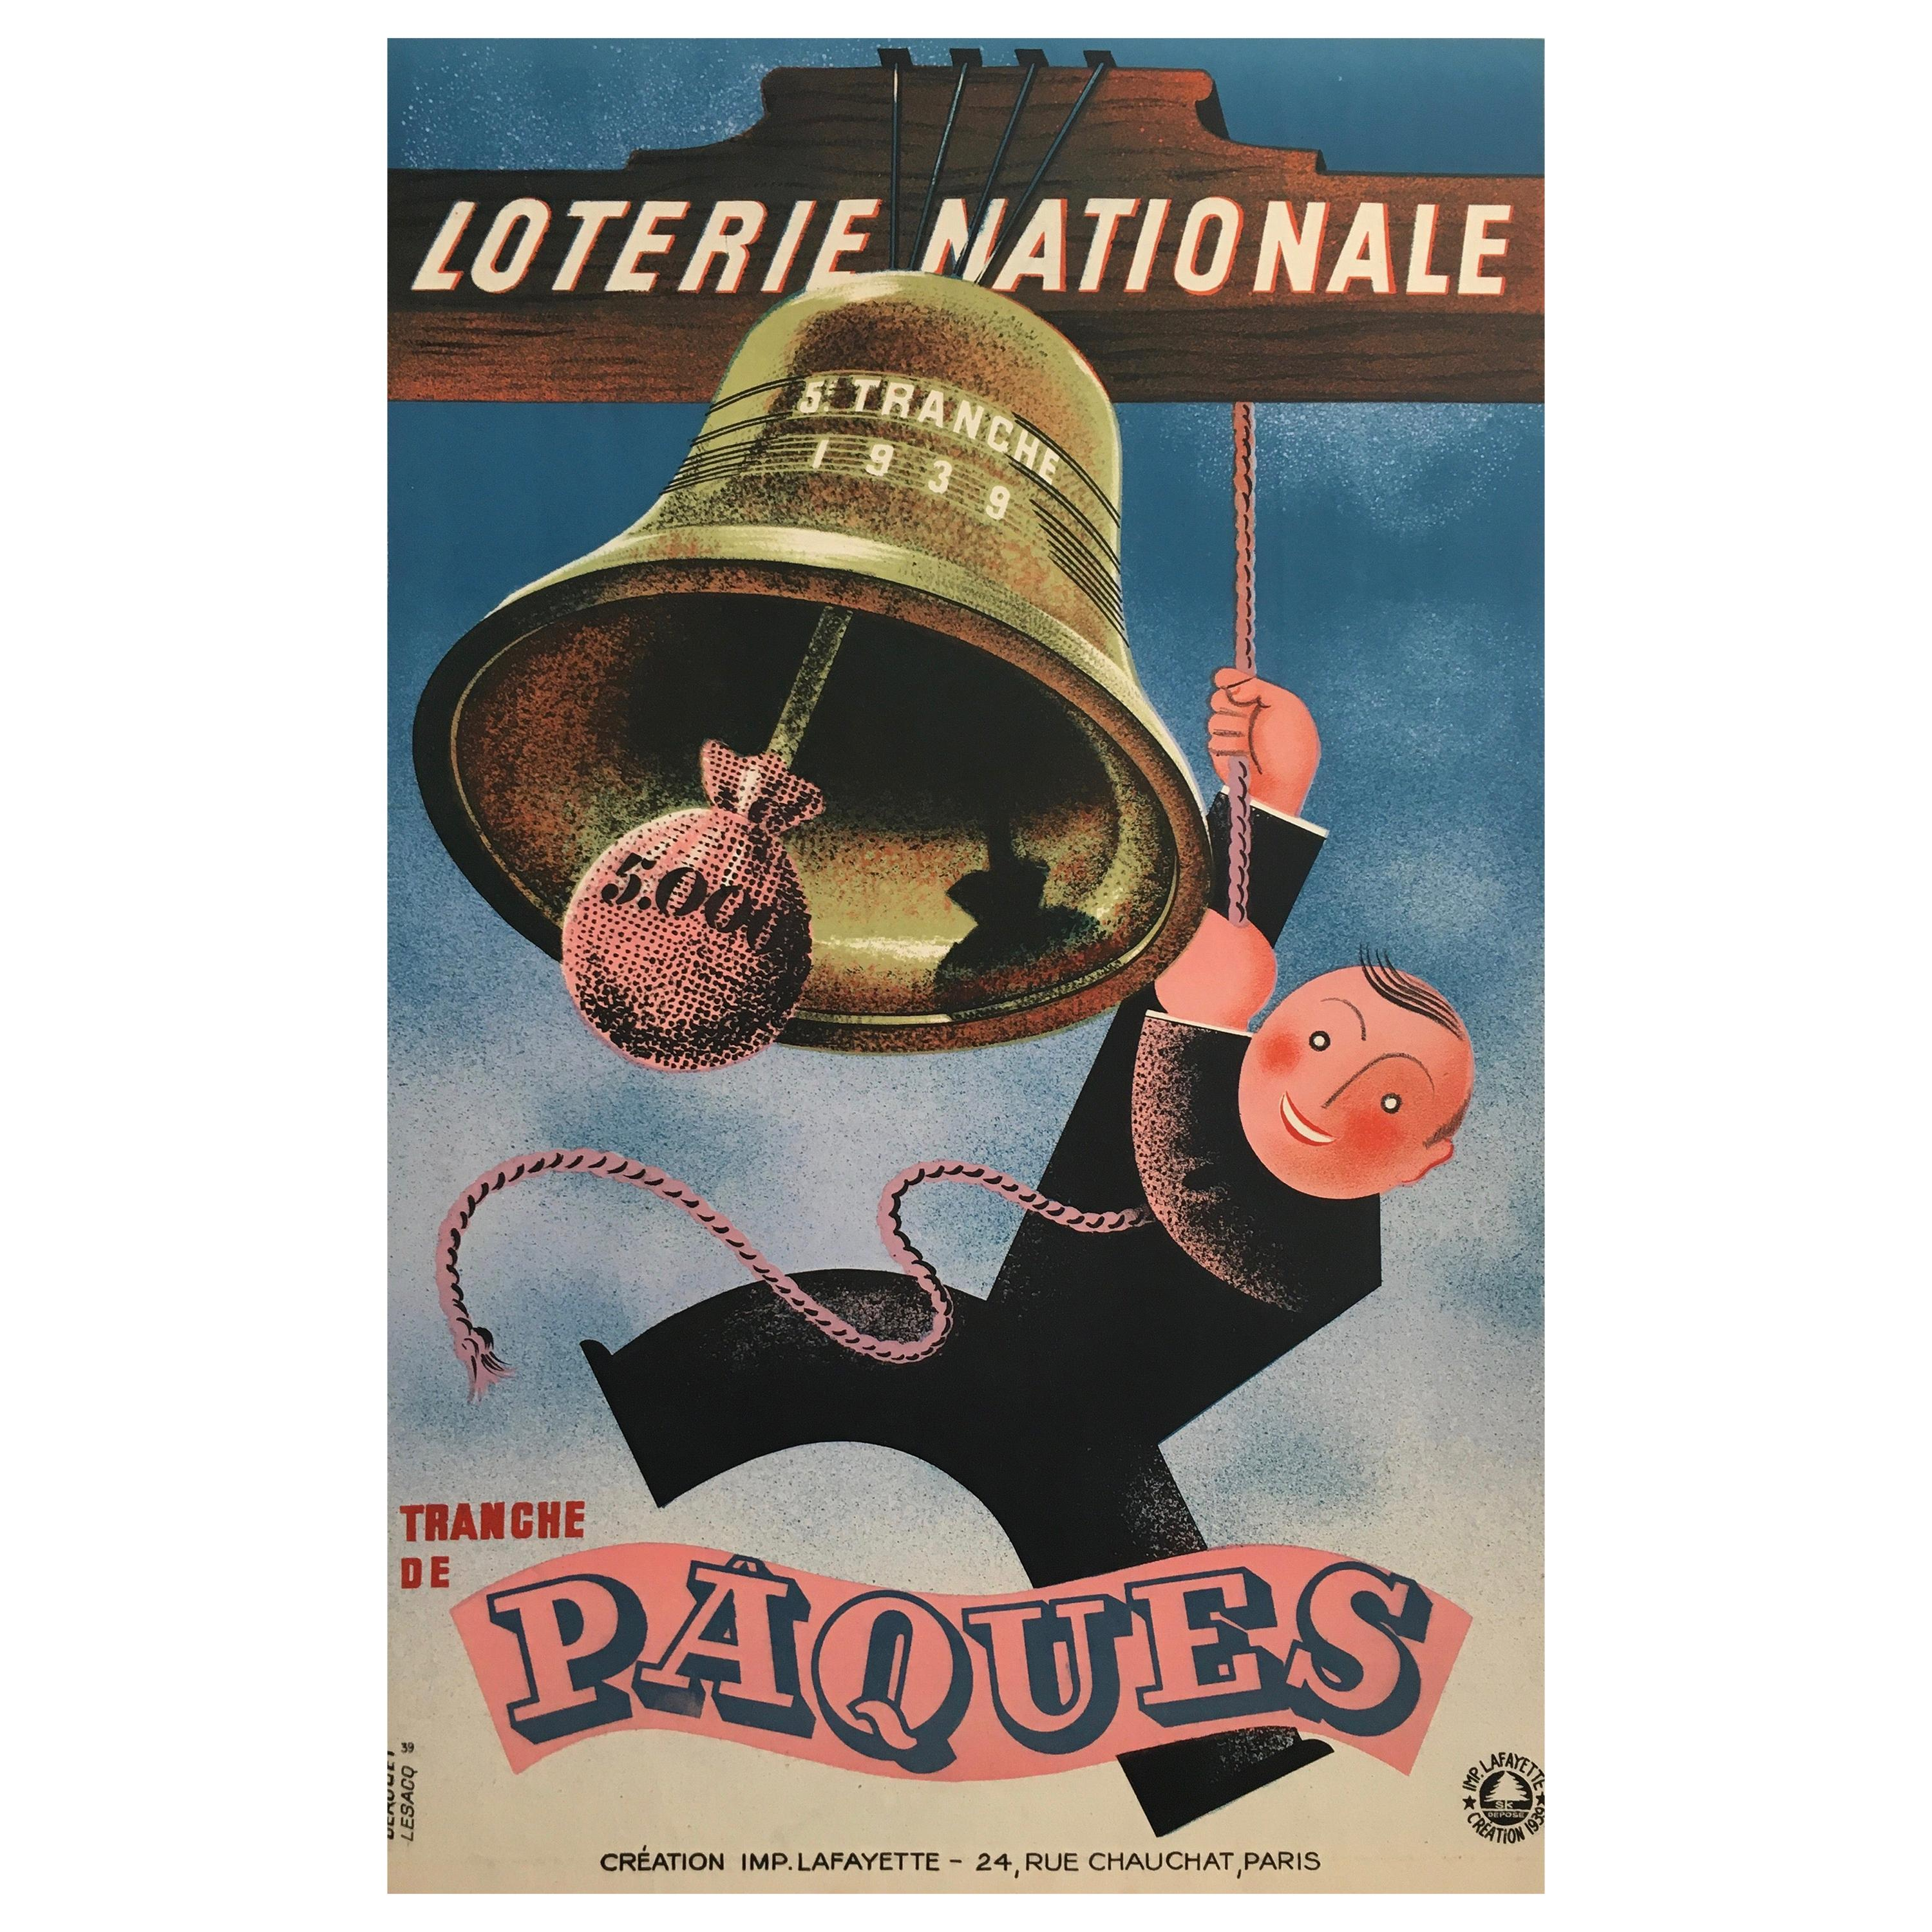 Original French Lithograph Loterie Nationale Poster 'Tranche De Paques', 1938